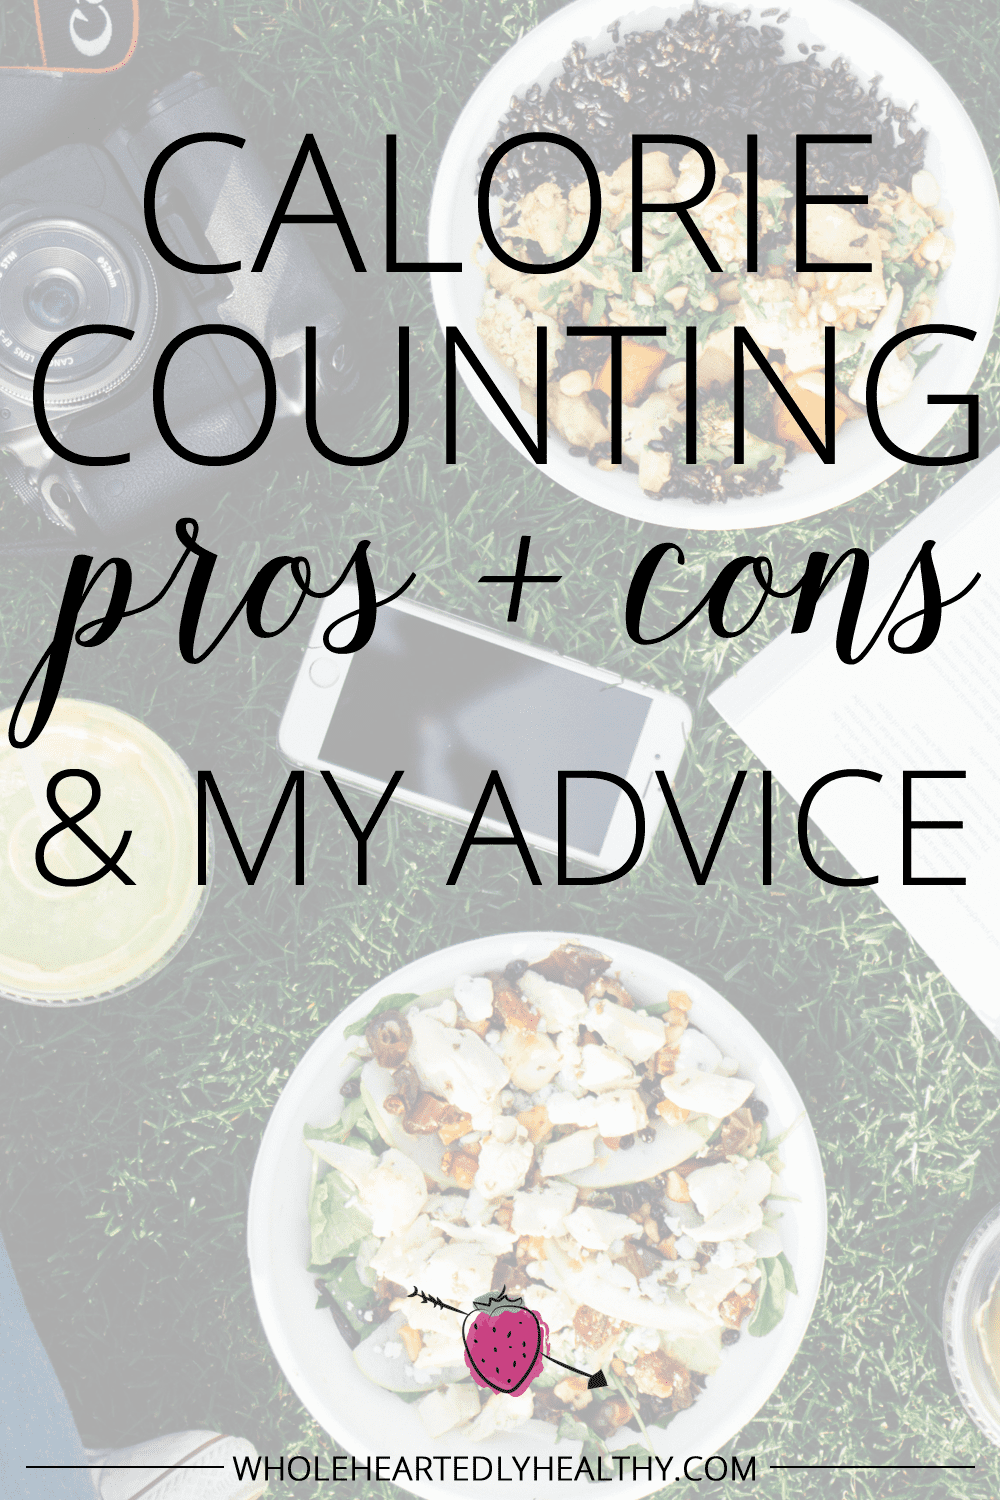 Calorie counting pros and cons